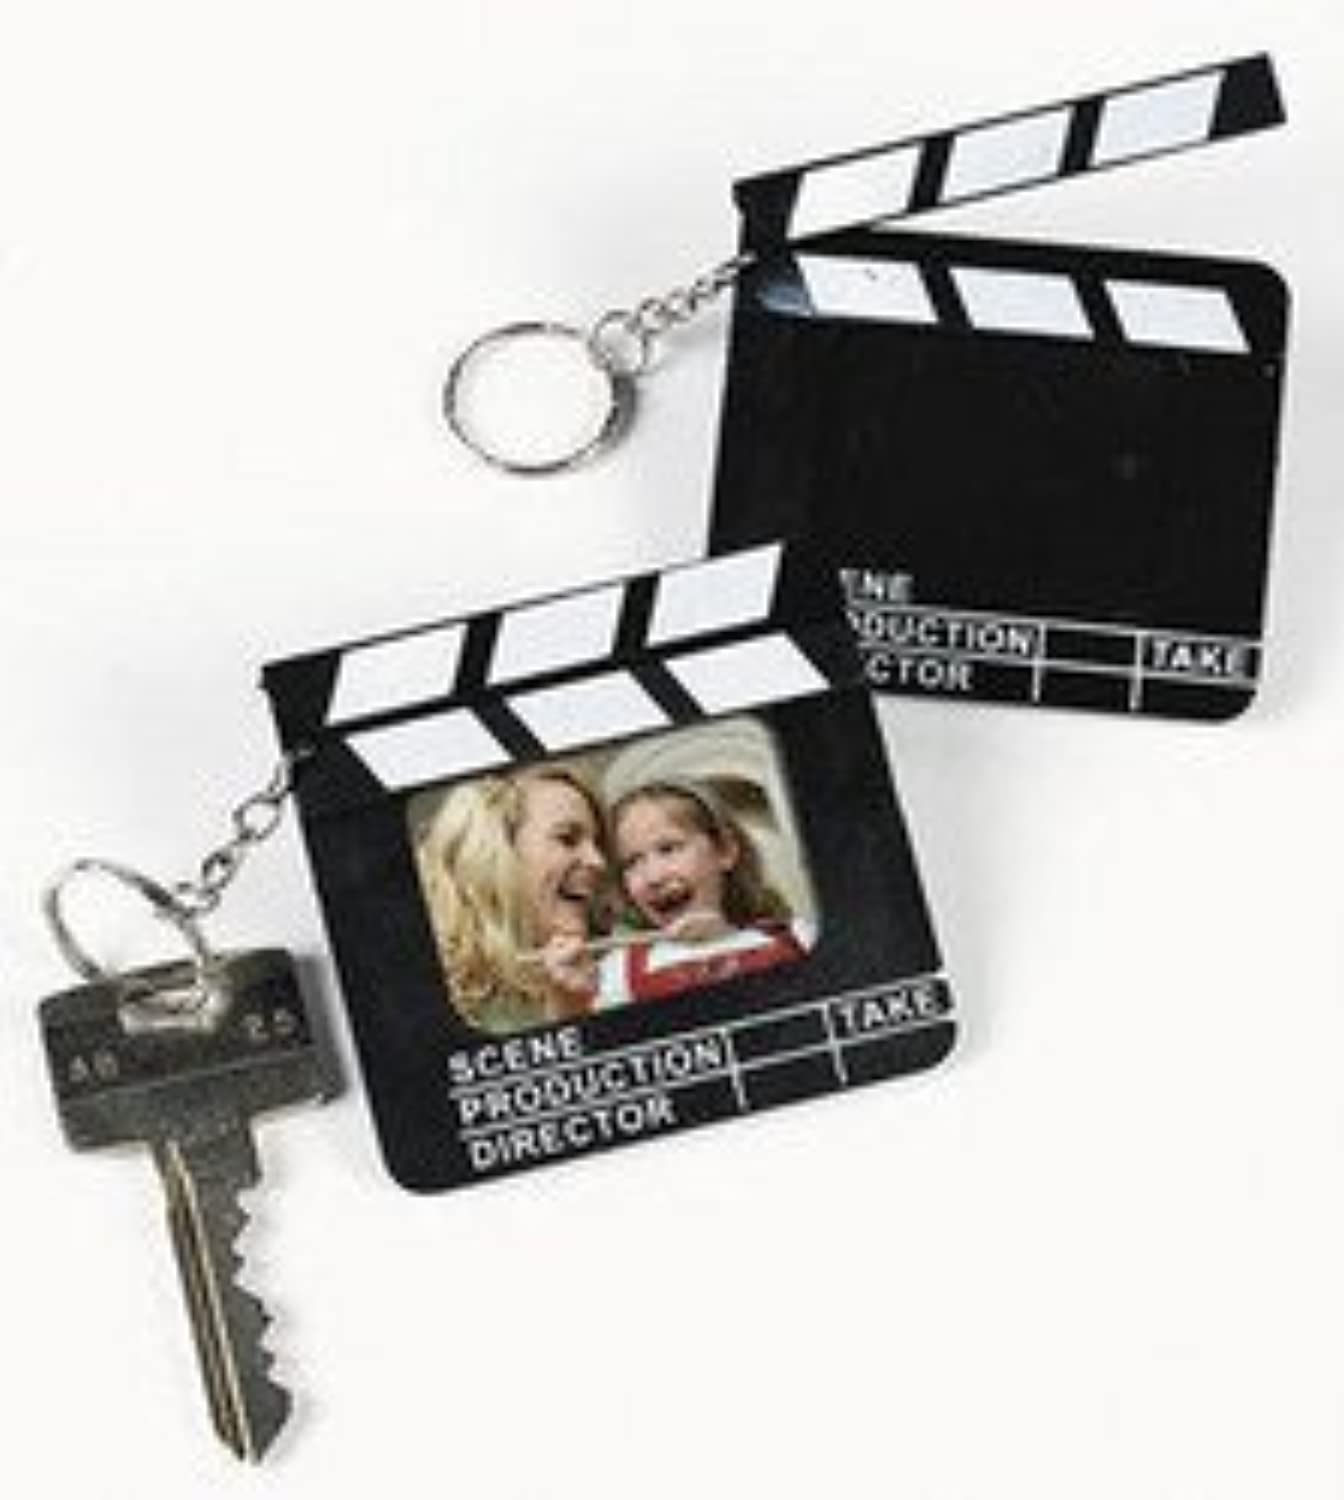 Director'S Photo Frame Plastic K.C. (1 dozen) - Bulk [Toy] by FX [並行輸入品]